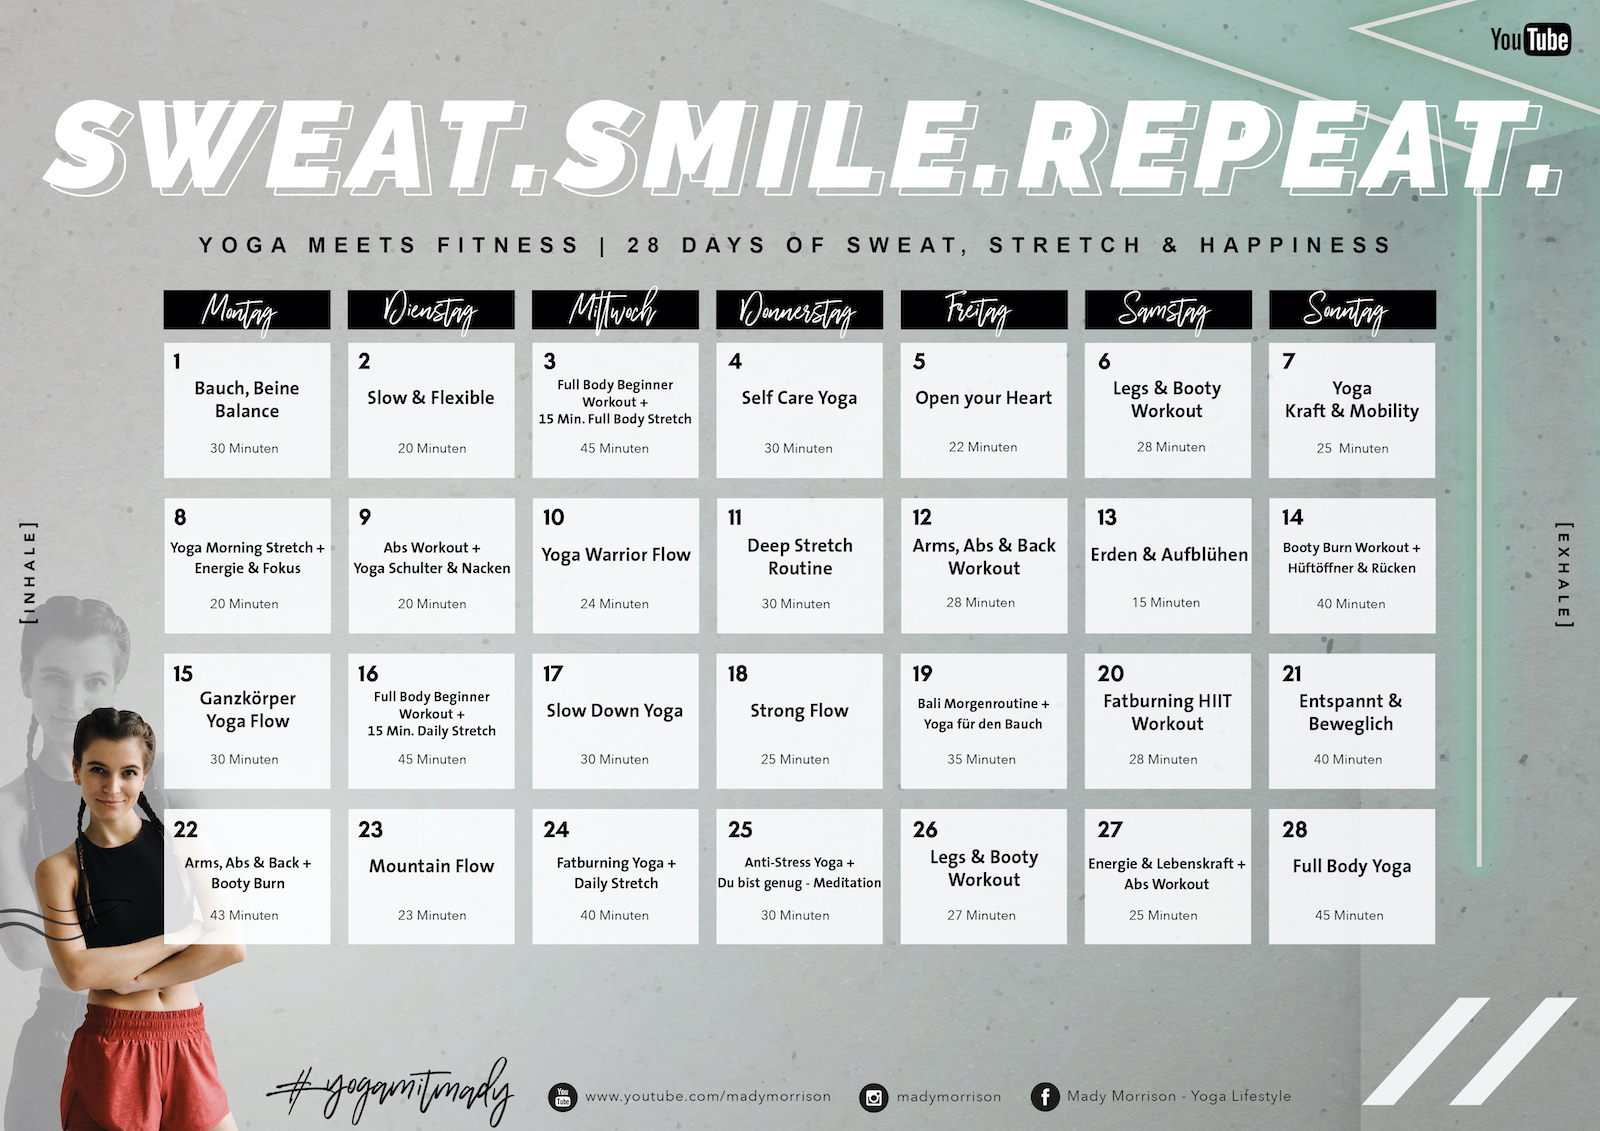 sweat-smile-repeat-by-madymorrison-NEU-2